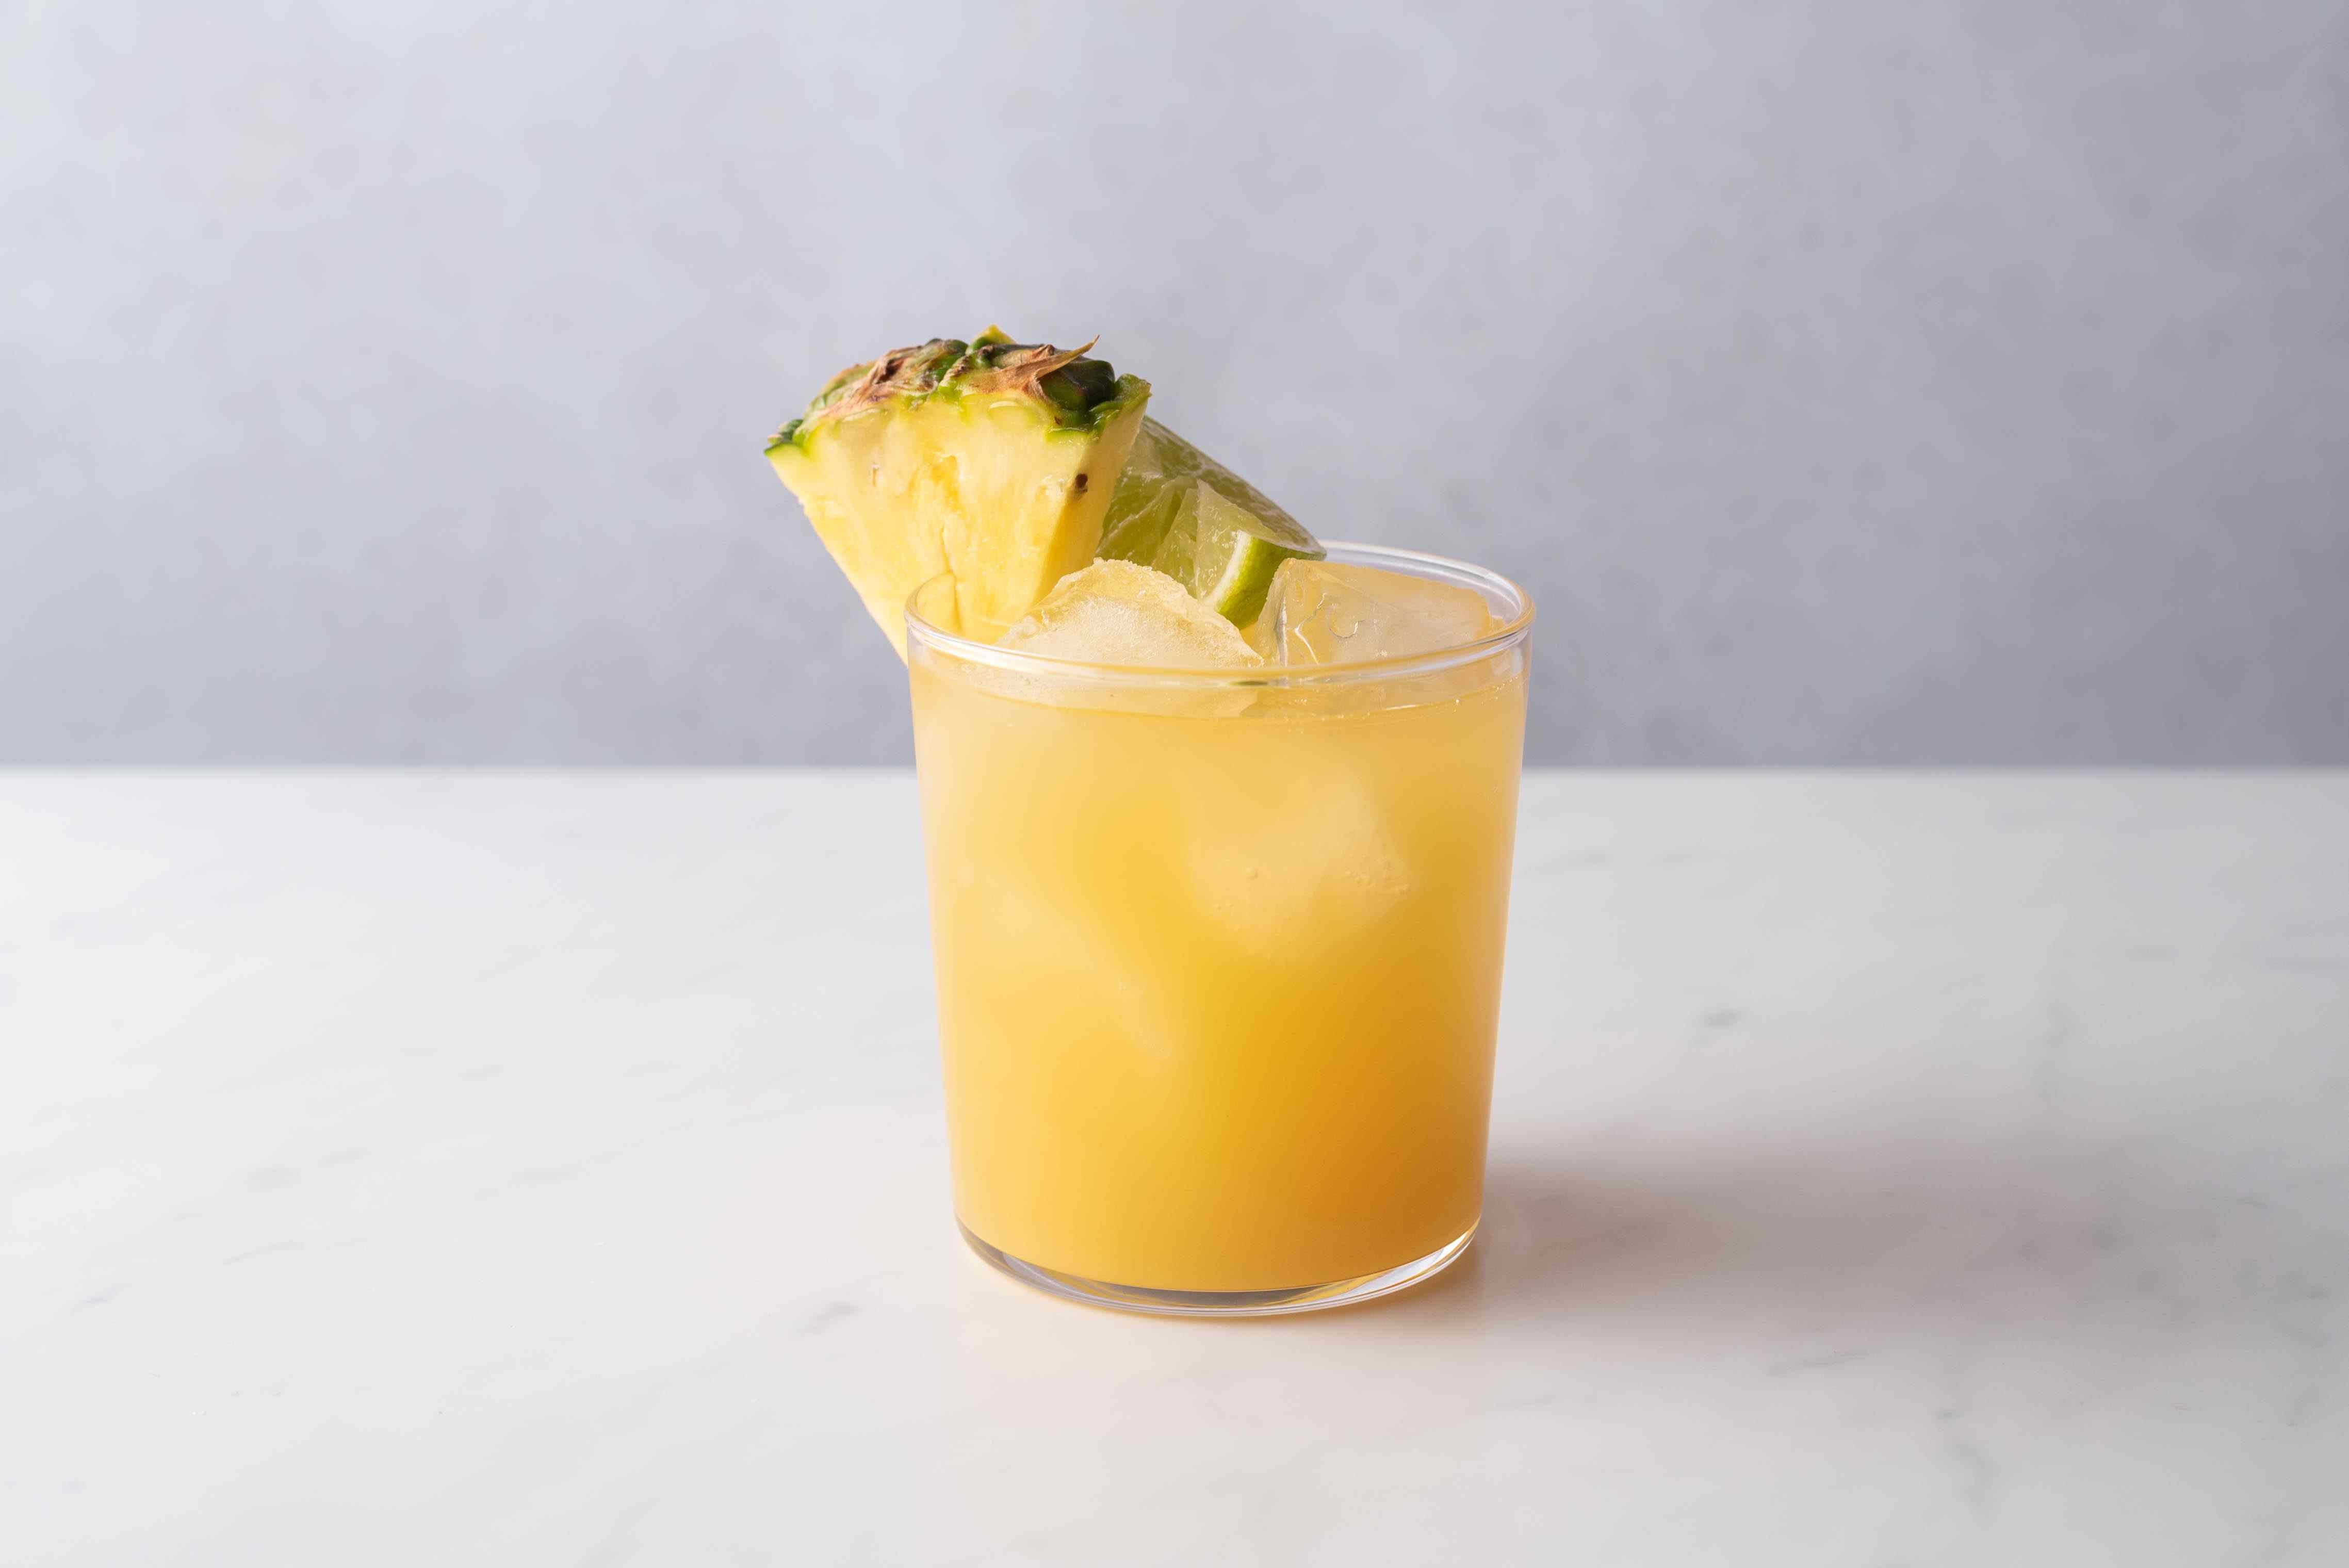 Pineapple Tequila Mixed Drink, garnished with pineapple and lime